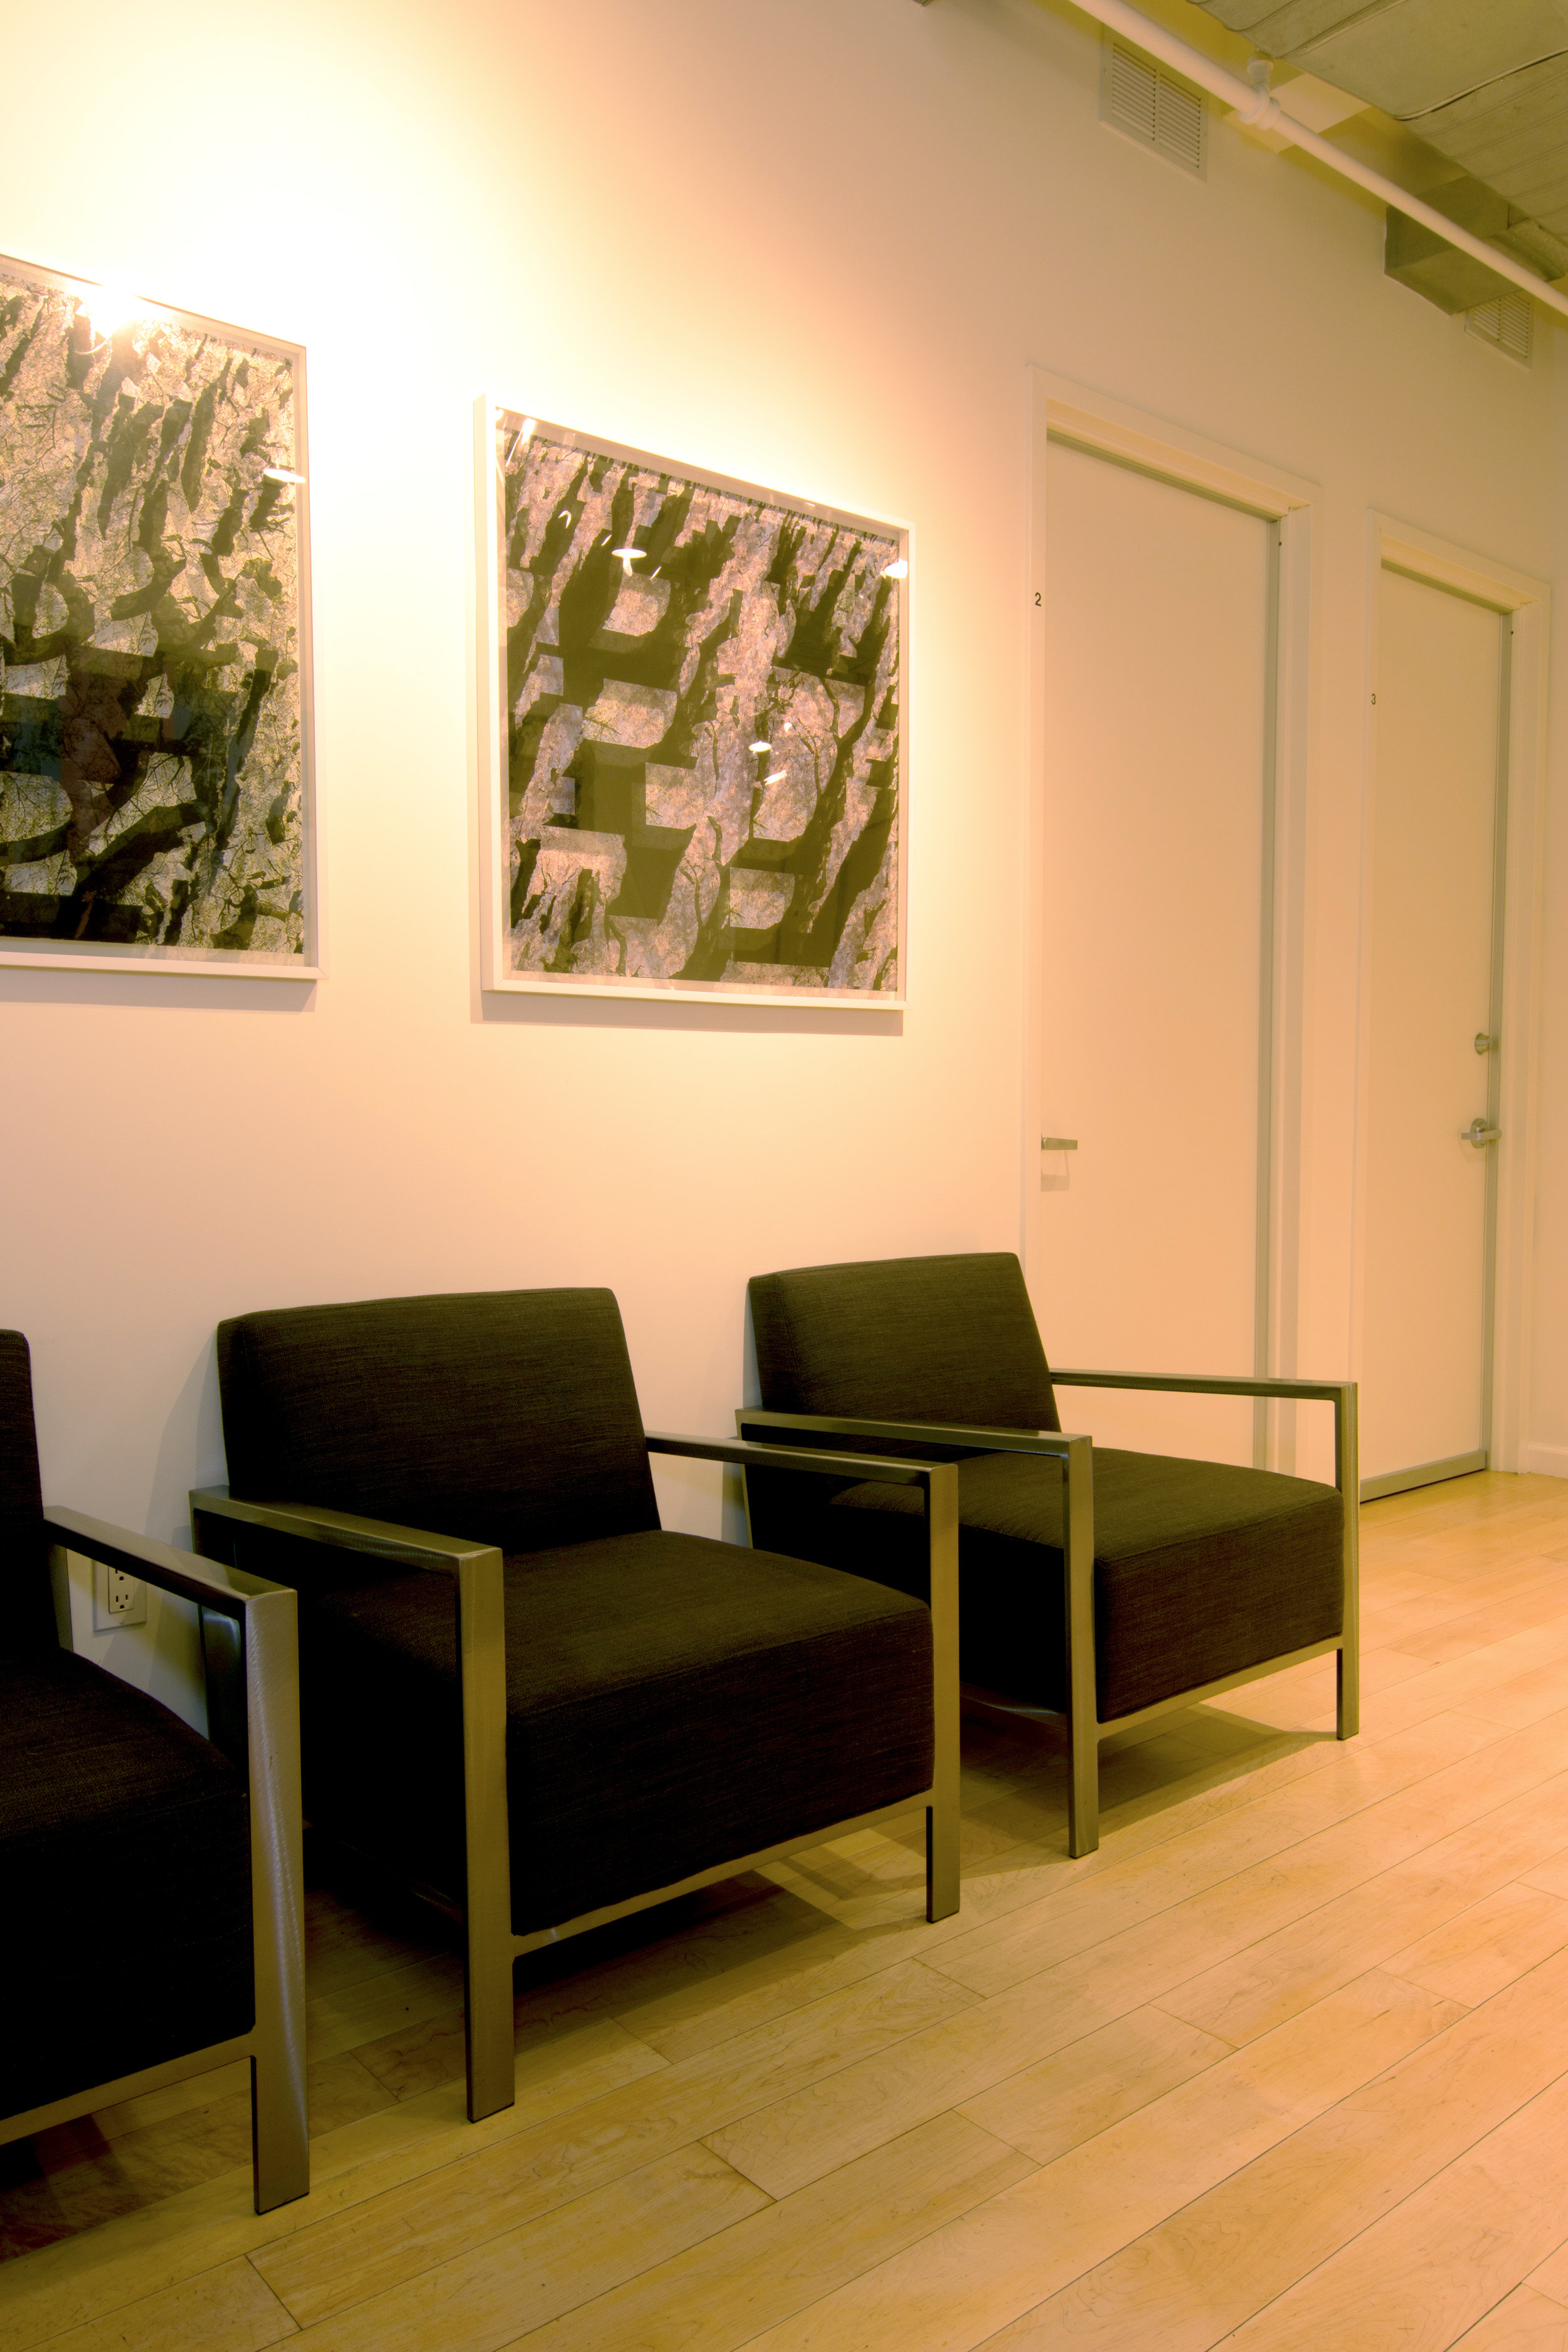 serene-offices-therapy-office-flatiron-21st-street-waiting-room-2-chairs.jpg.jpg